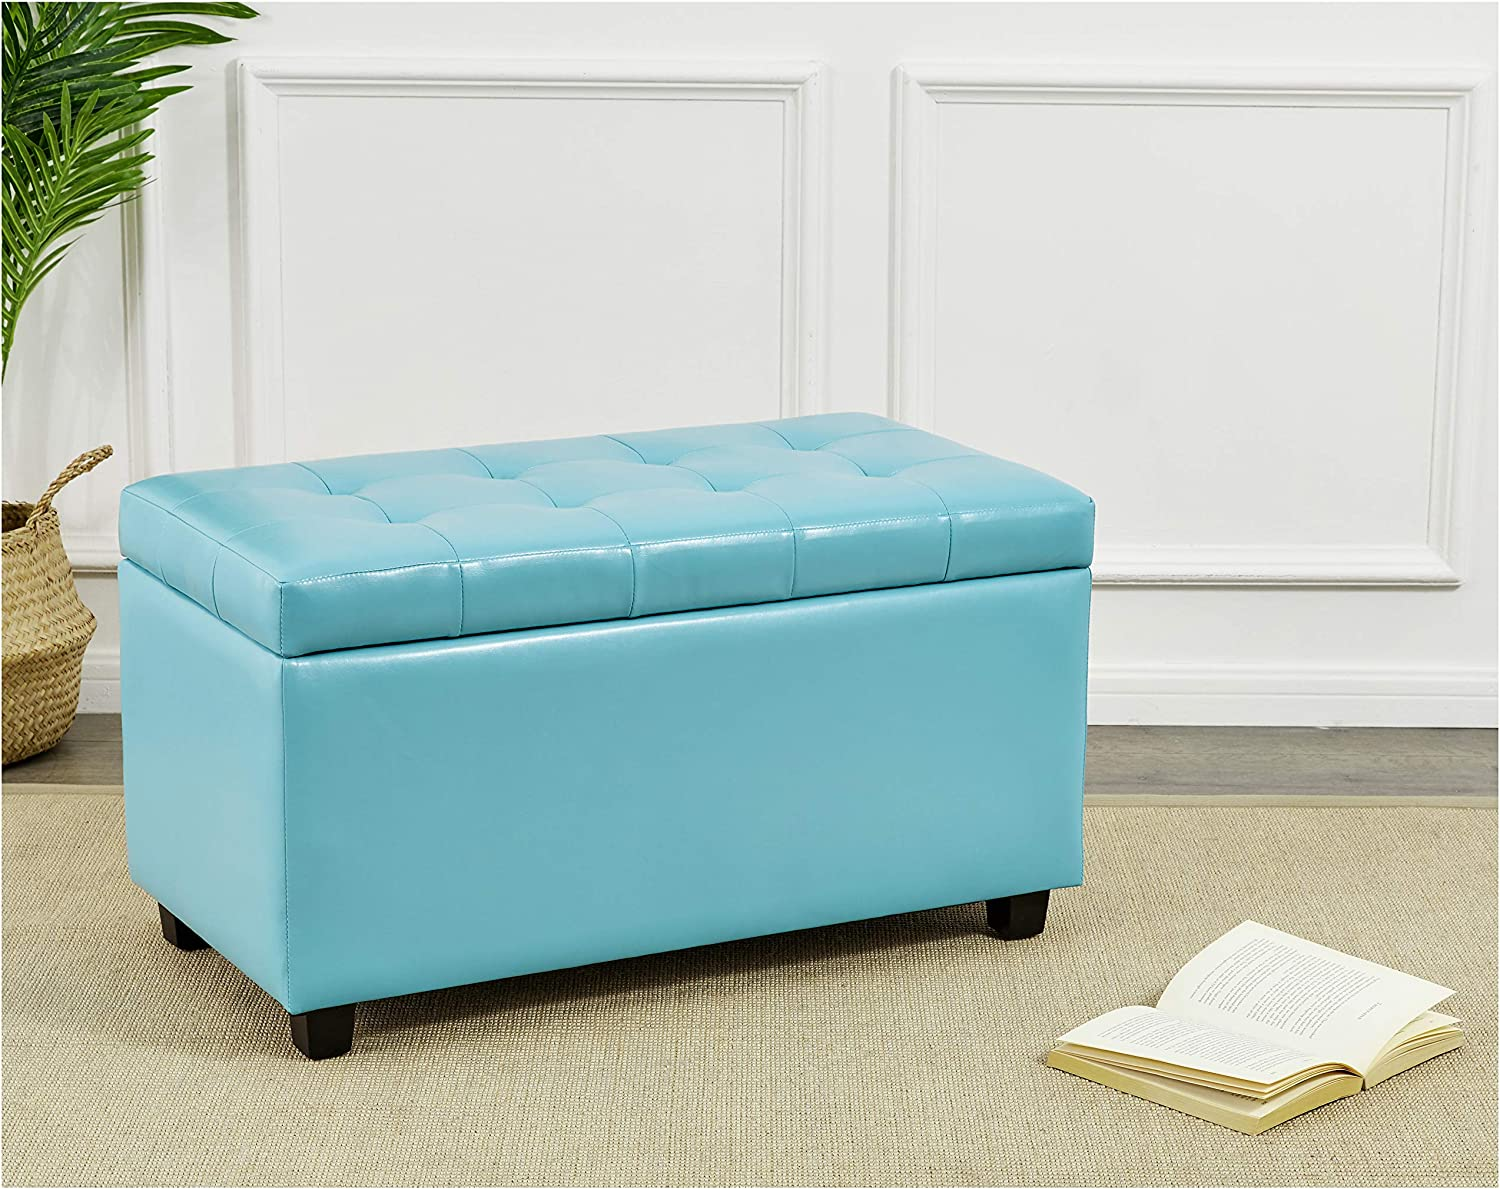 Minty Blue 34 x 18 x 19 Inches Red Hook Ravenna Storage Ottoman Bench with Faux-Leather Upholstery